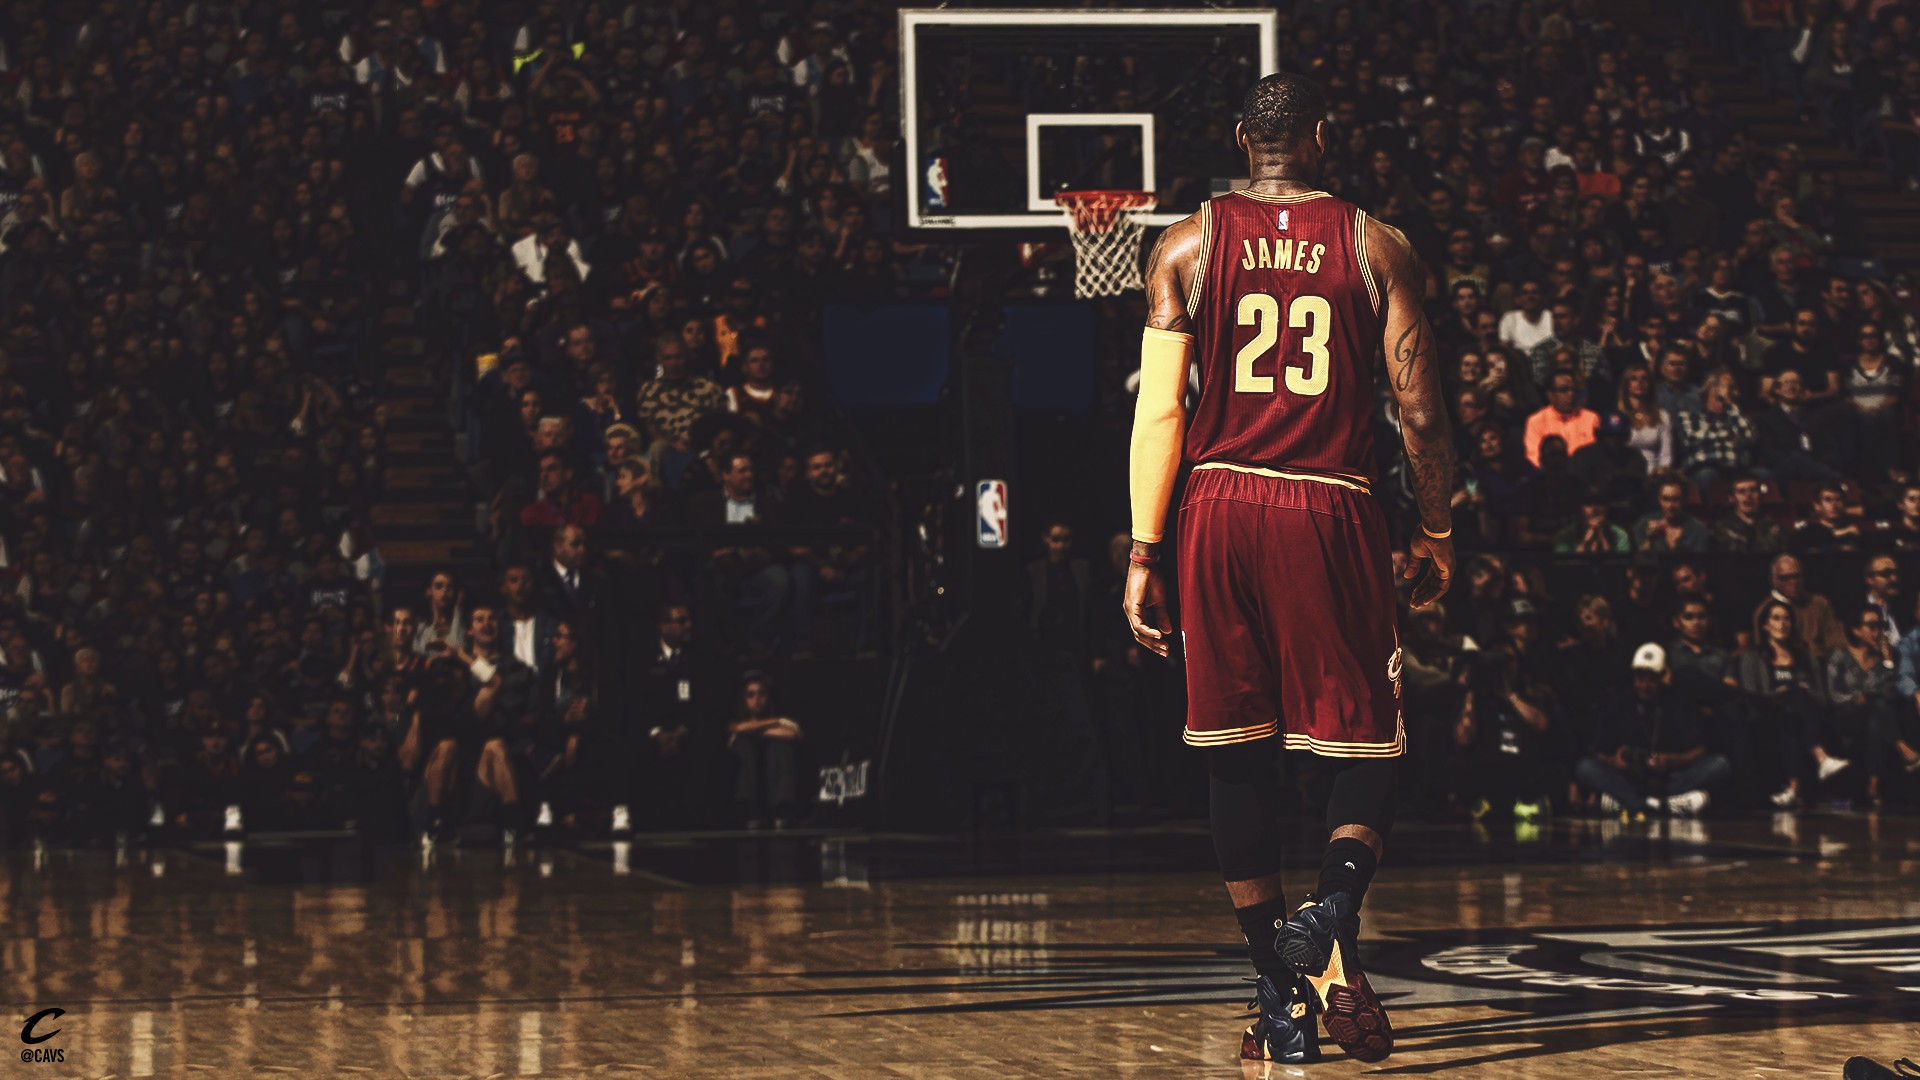 Lebron James Hd Wallpaper 78 Images